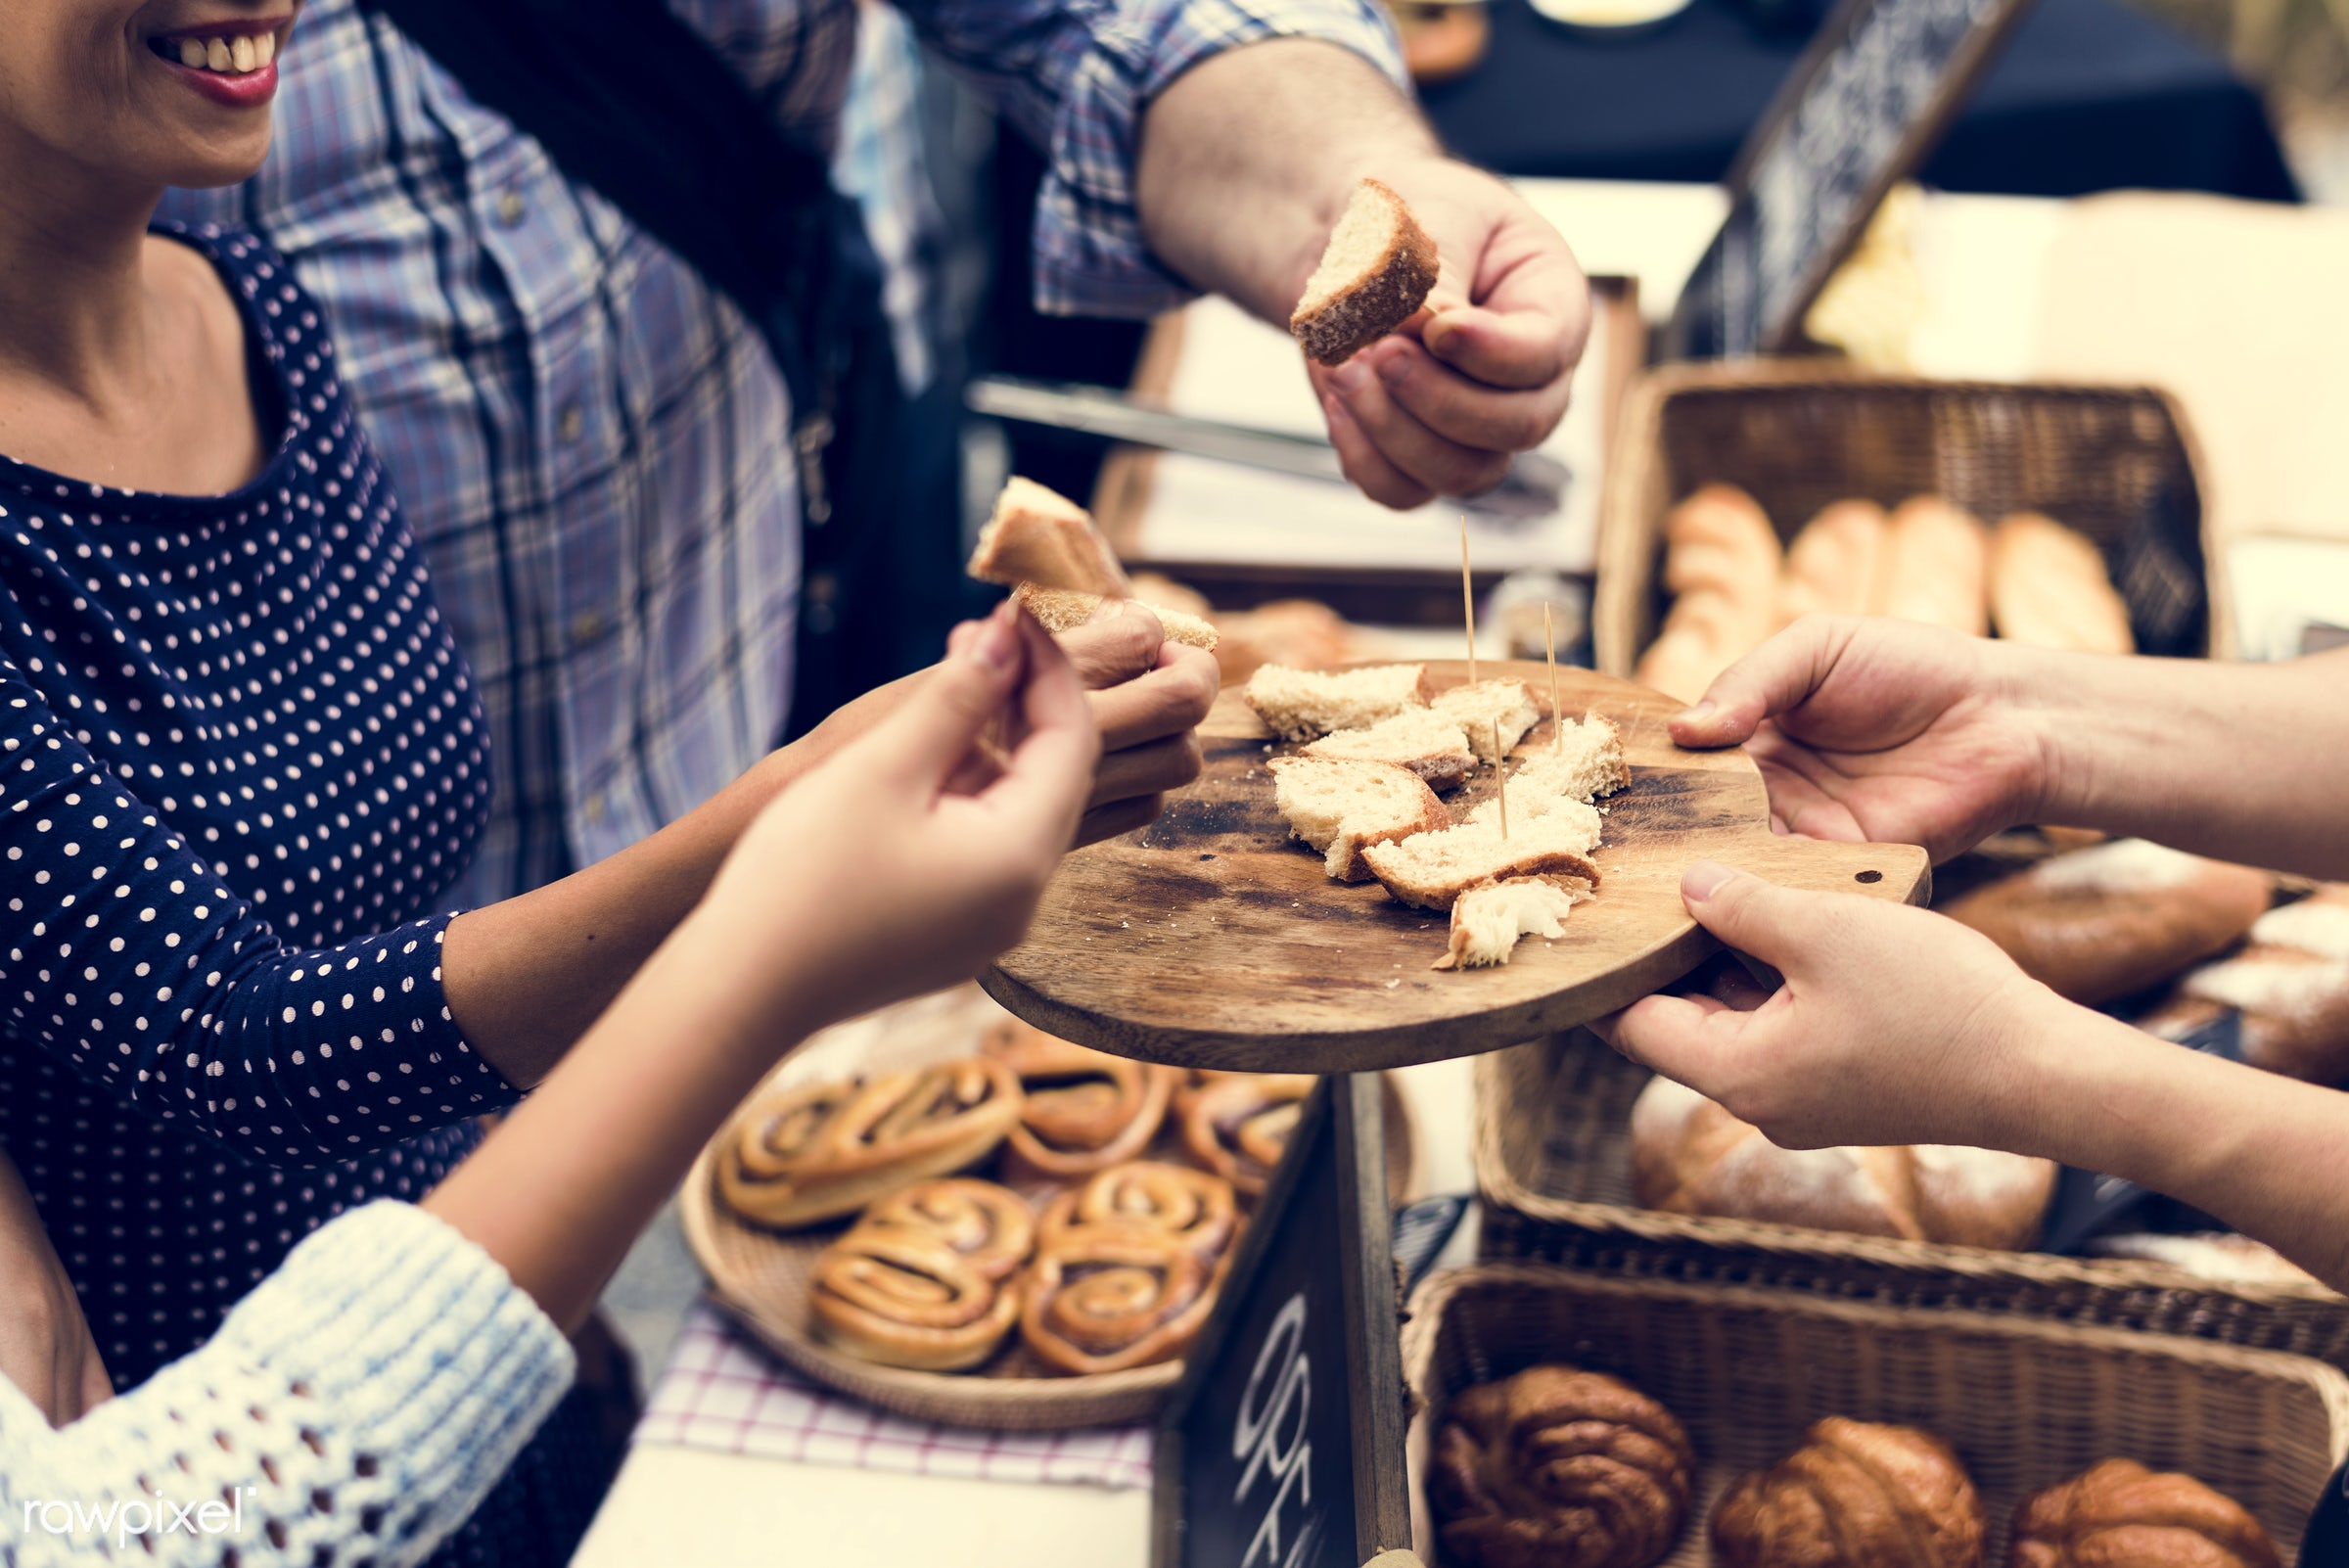 grocery, shop, cutout, person, stall, cuisine, pastries, test, show, homemade, people, taste, toothpick, bakery, bread,...